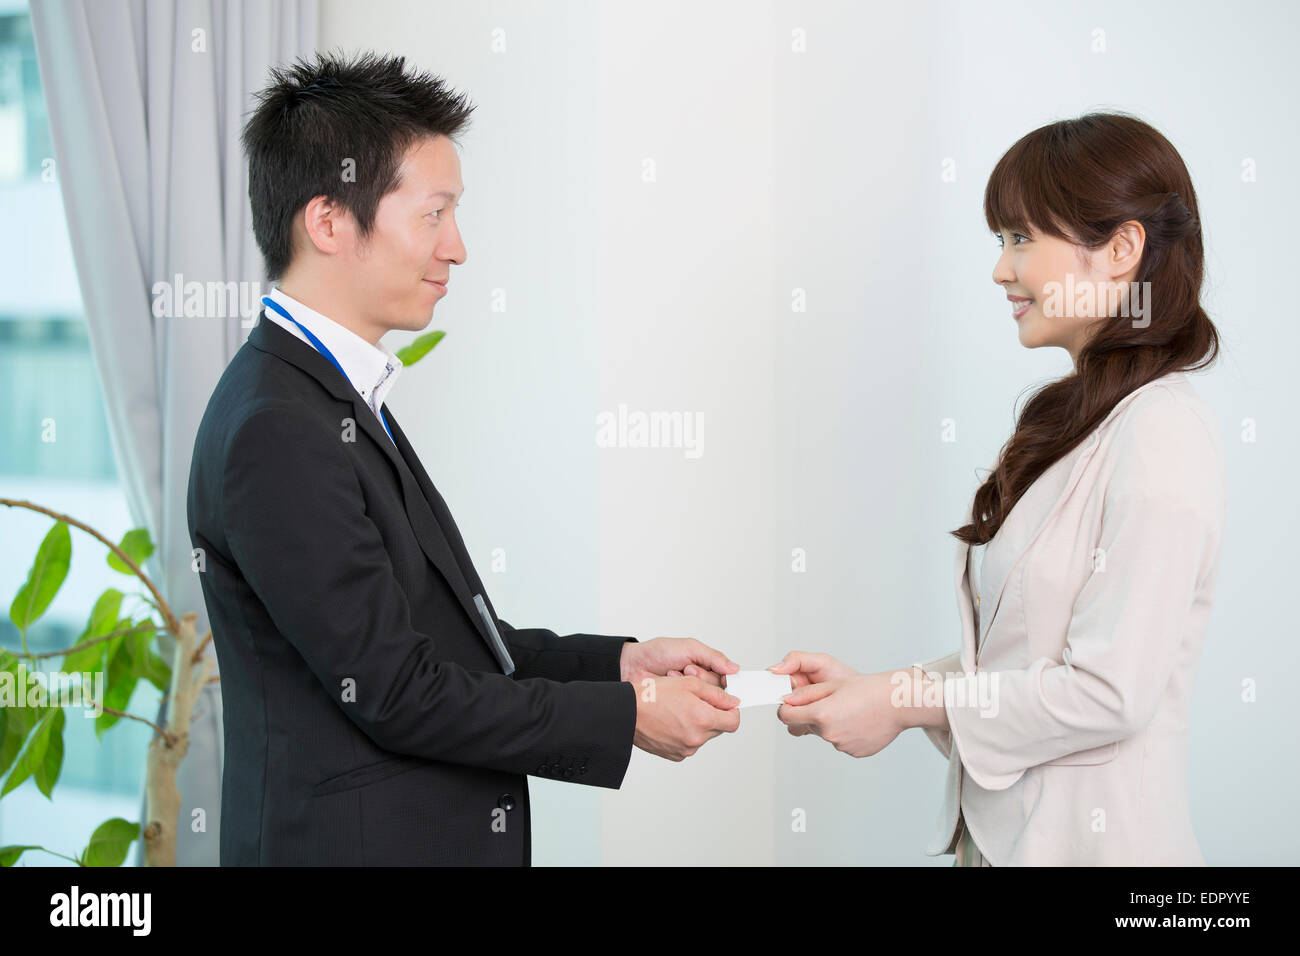 Business People Exchanging Business Cards - Stock Image